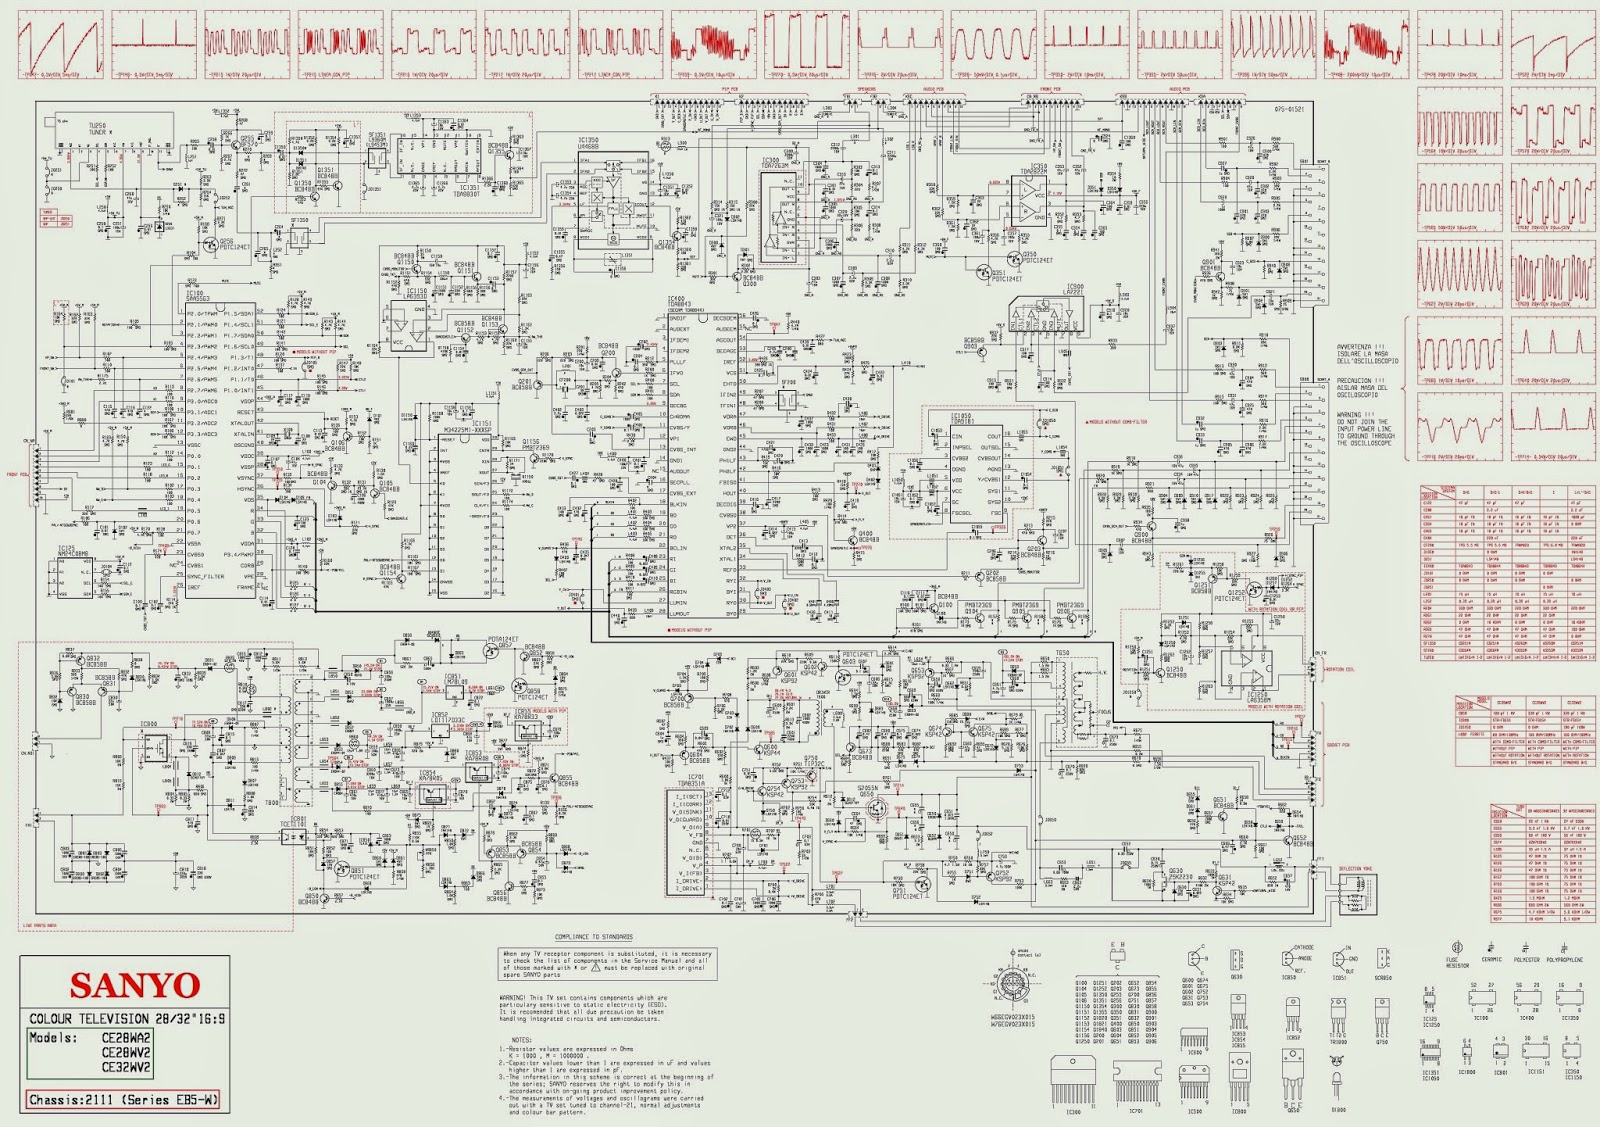 medium resolution of sanyo schematic diagram automotive wiring diagrams home theater systems wiring diagrams sanyo tv wiring diagram